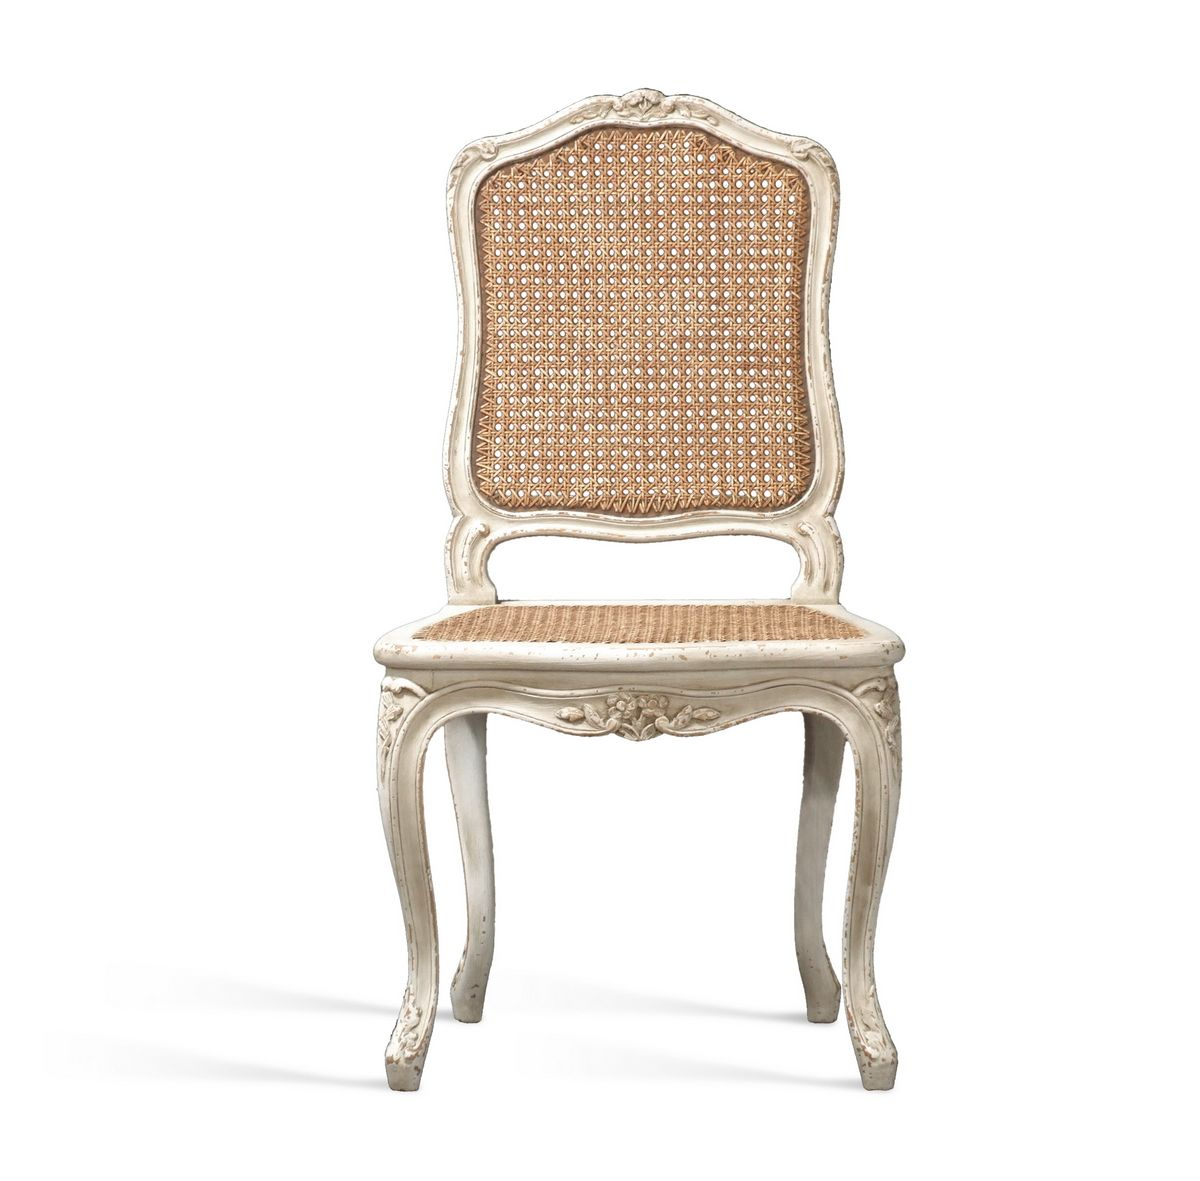 Louis Xv Chair Swivel Base Uk Quotà La Reine Quot With Caned Seat And Back